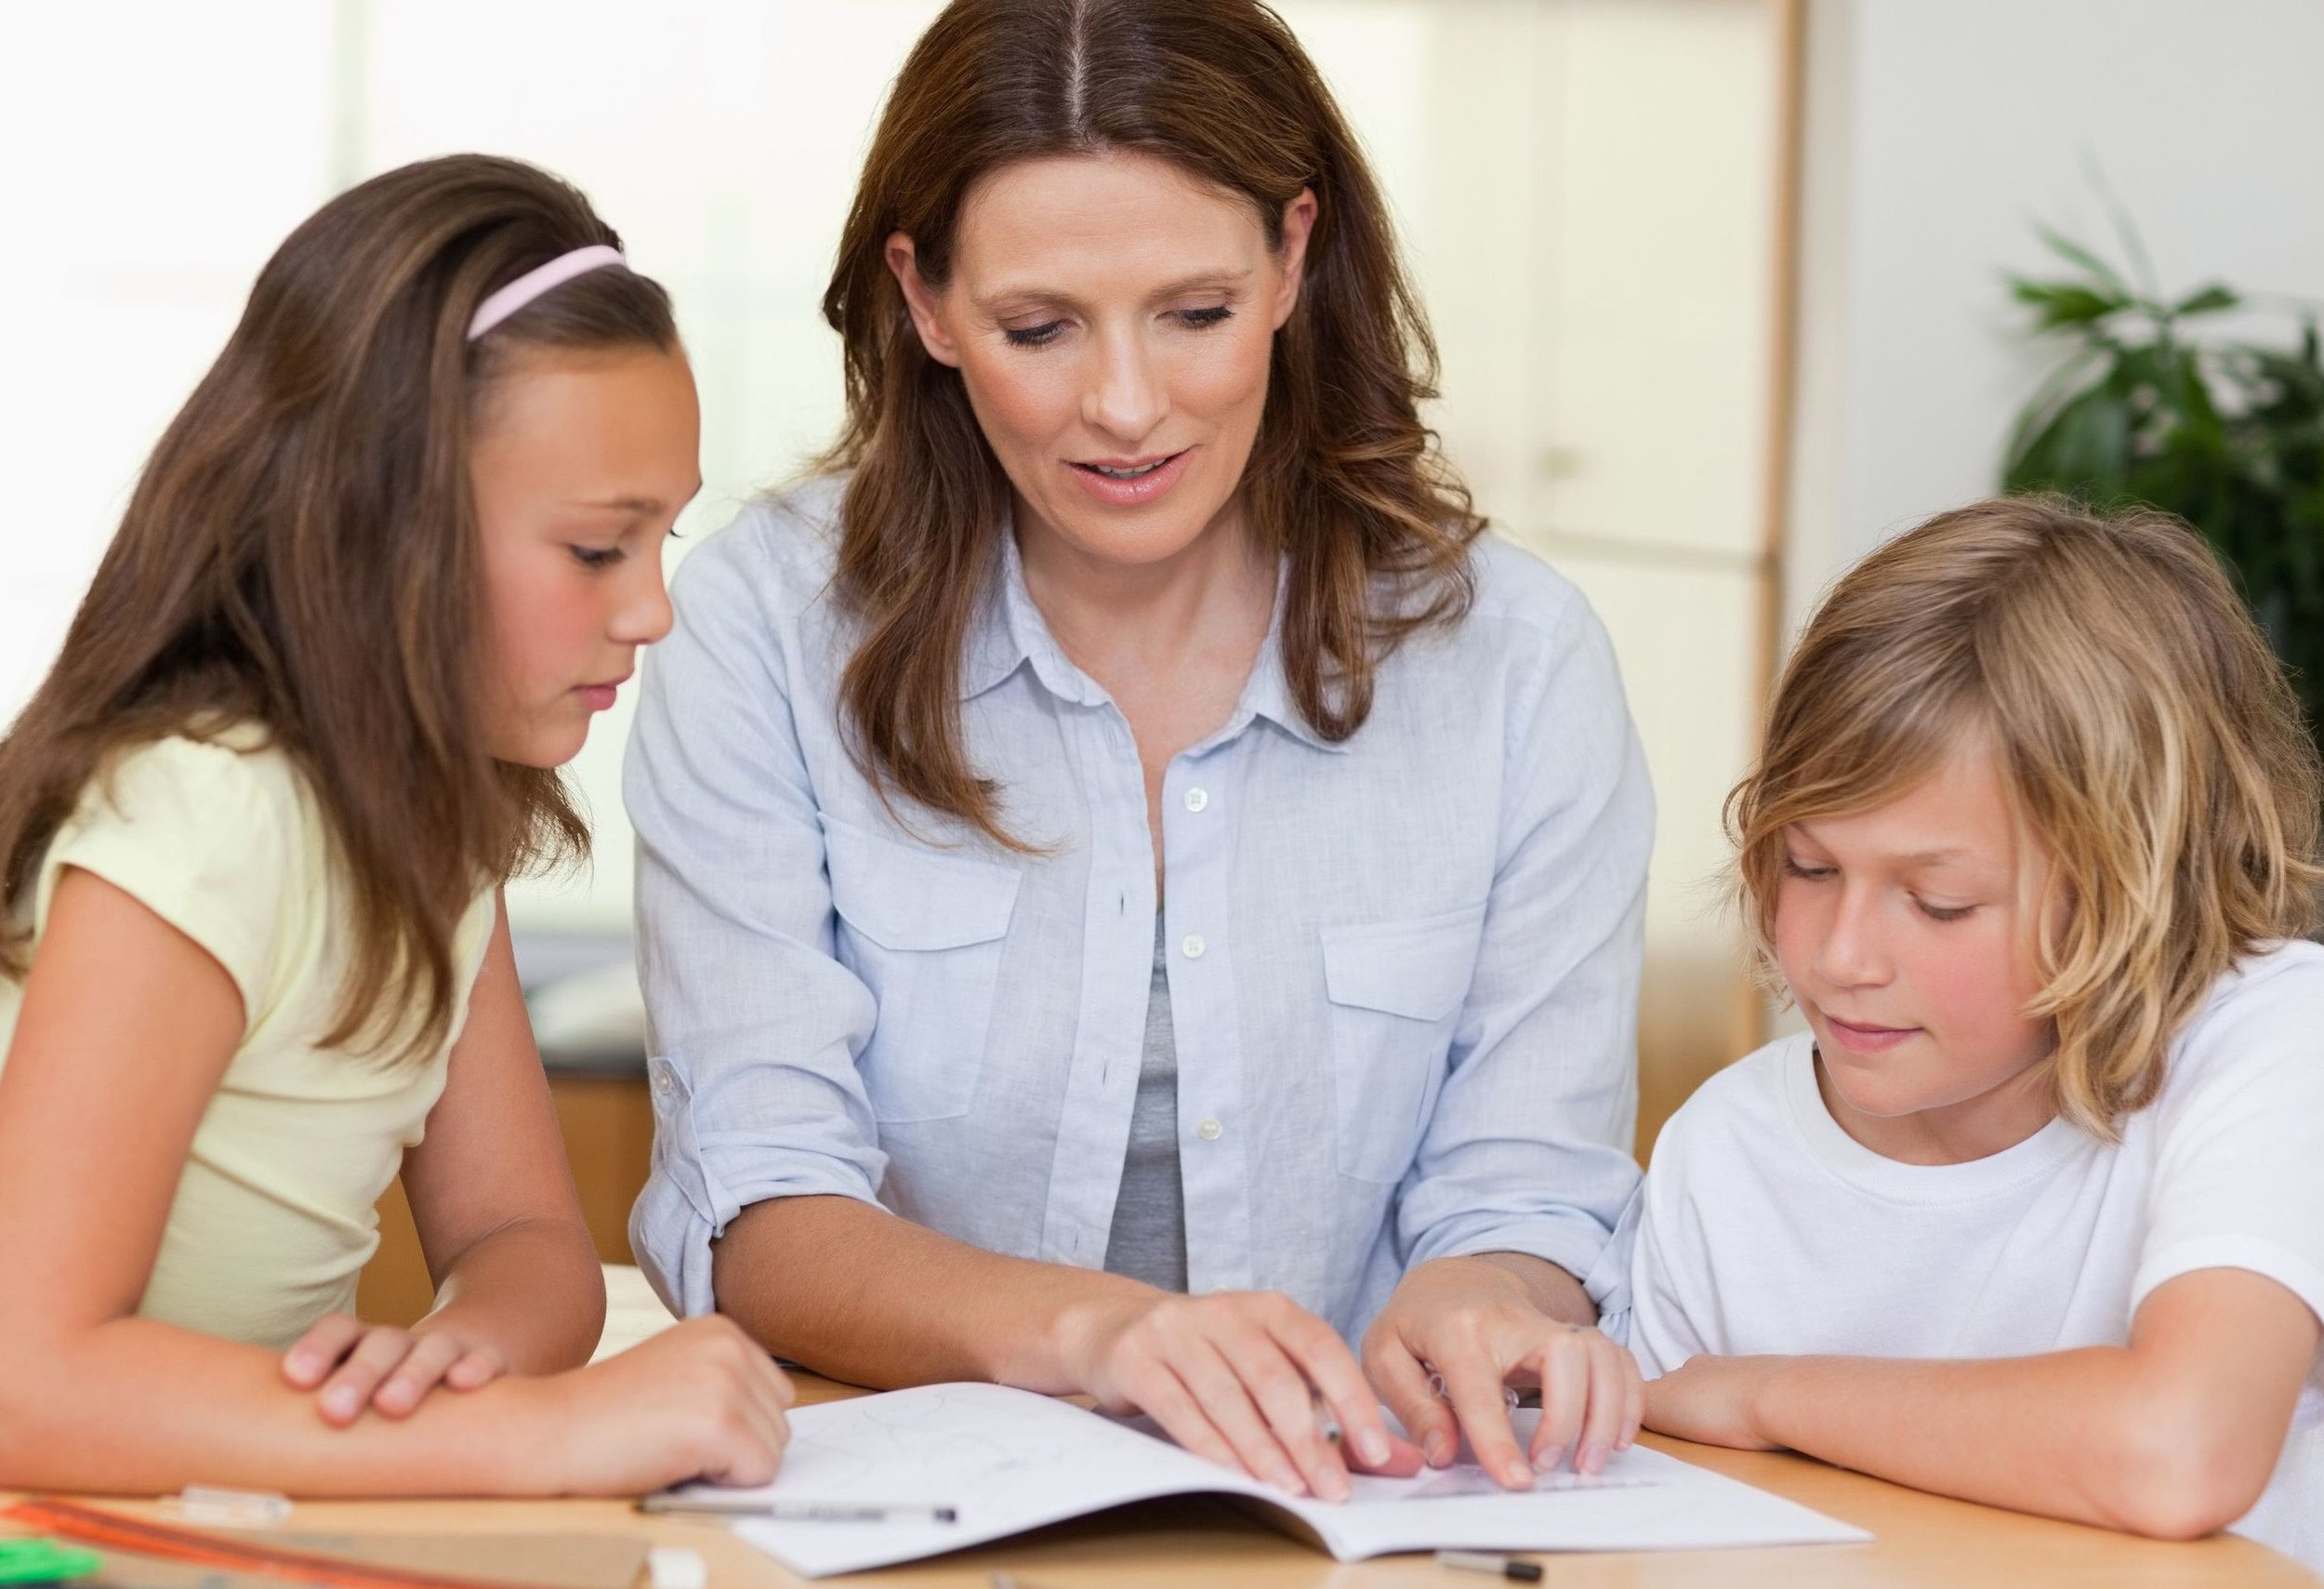 teacher with two students jpg cropped.jpg